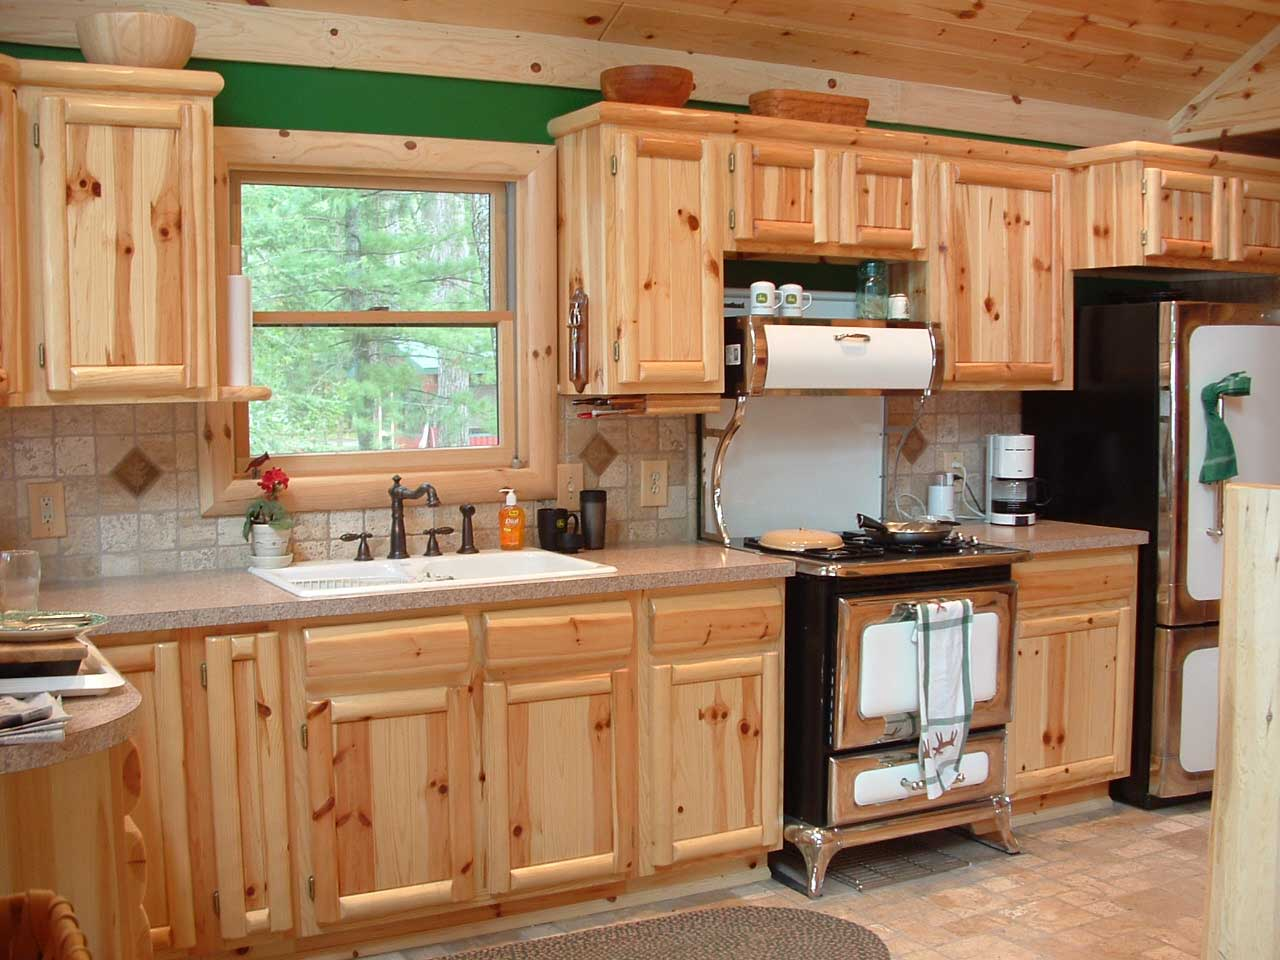 cabinetry pine kitchen cabinets 03WebQuality